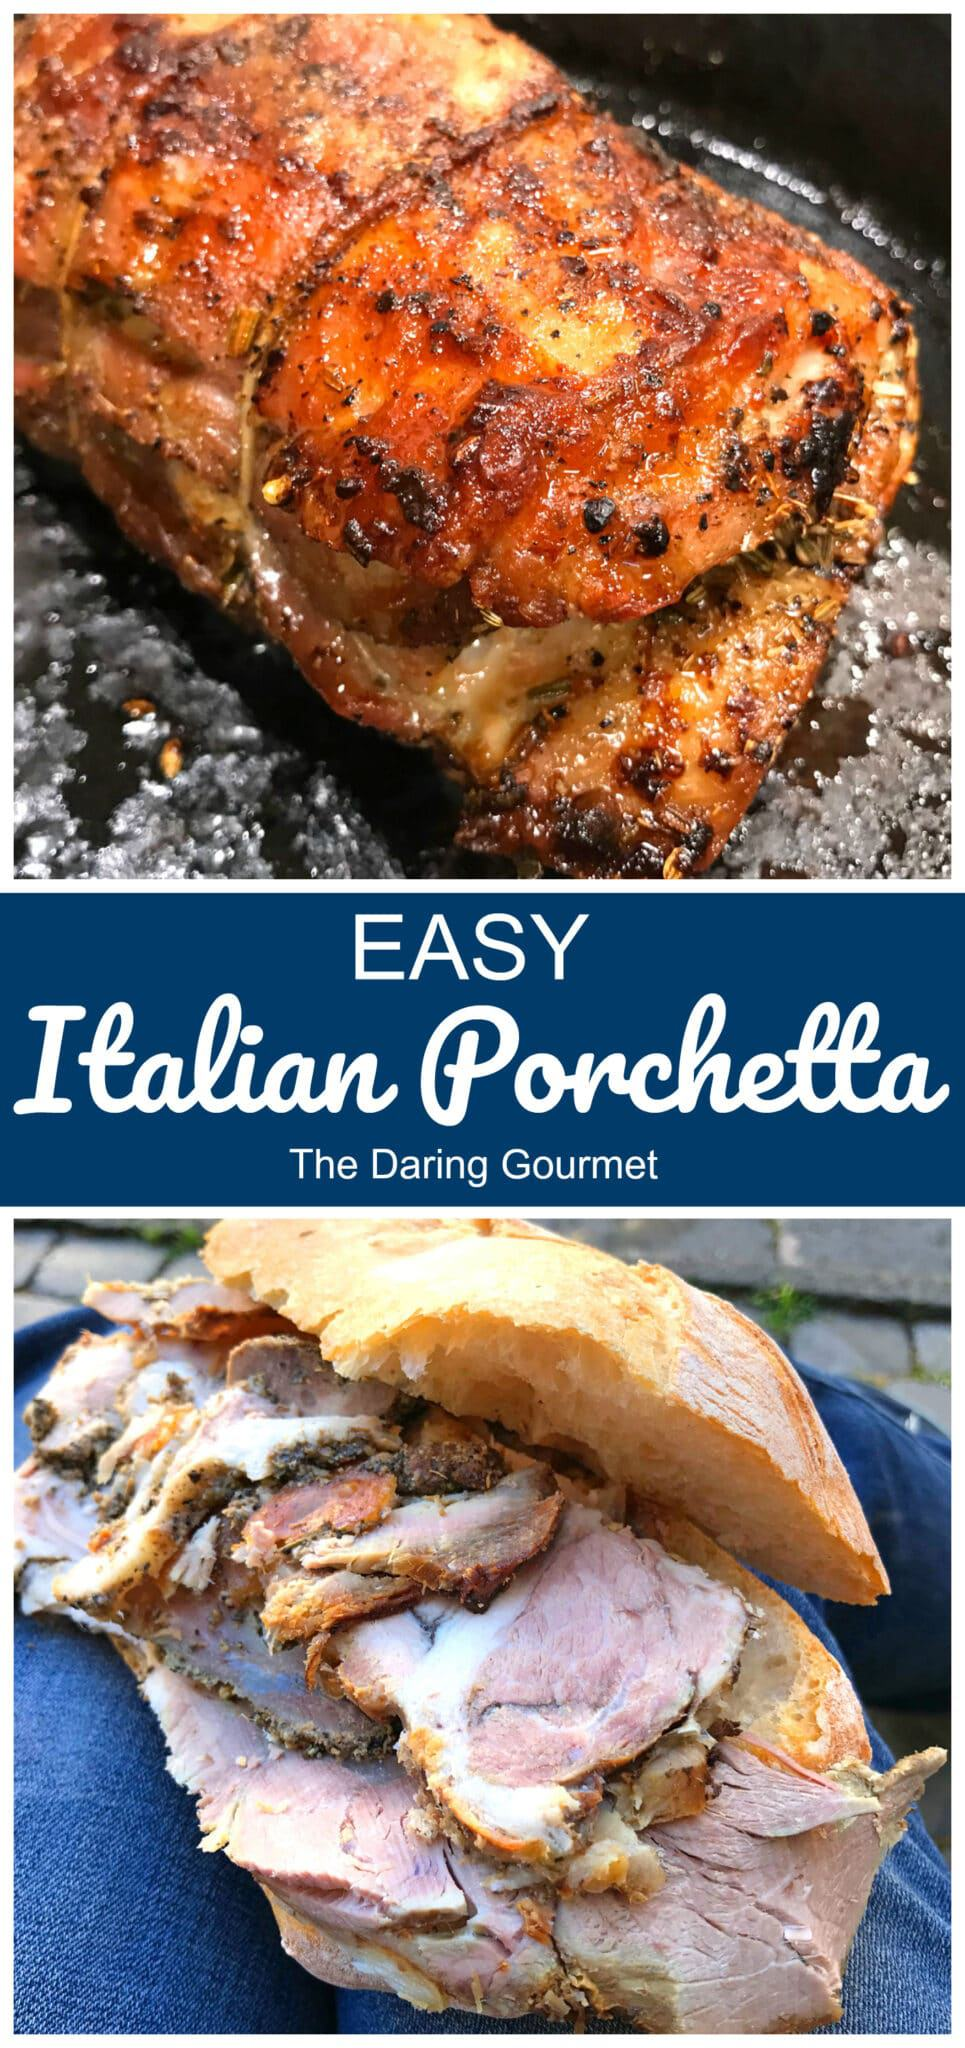 porchetta recipe easy pork roast seasoned fennel herbs sandwiches